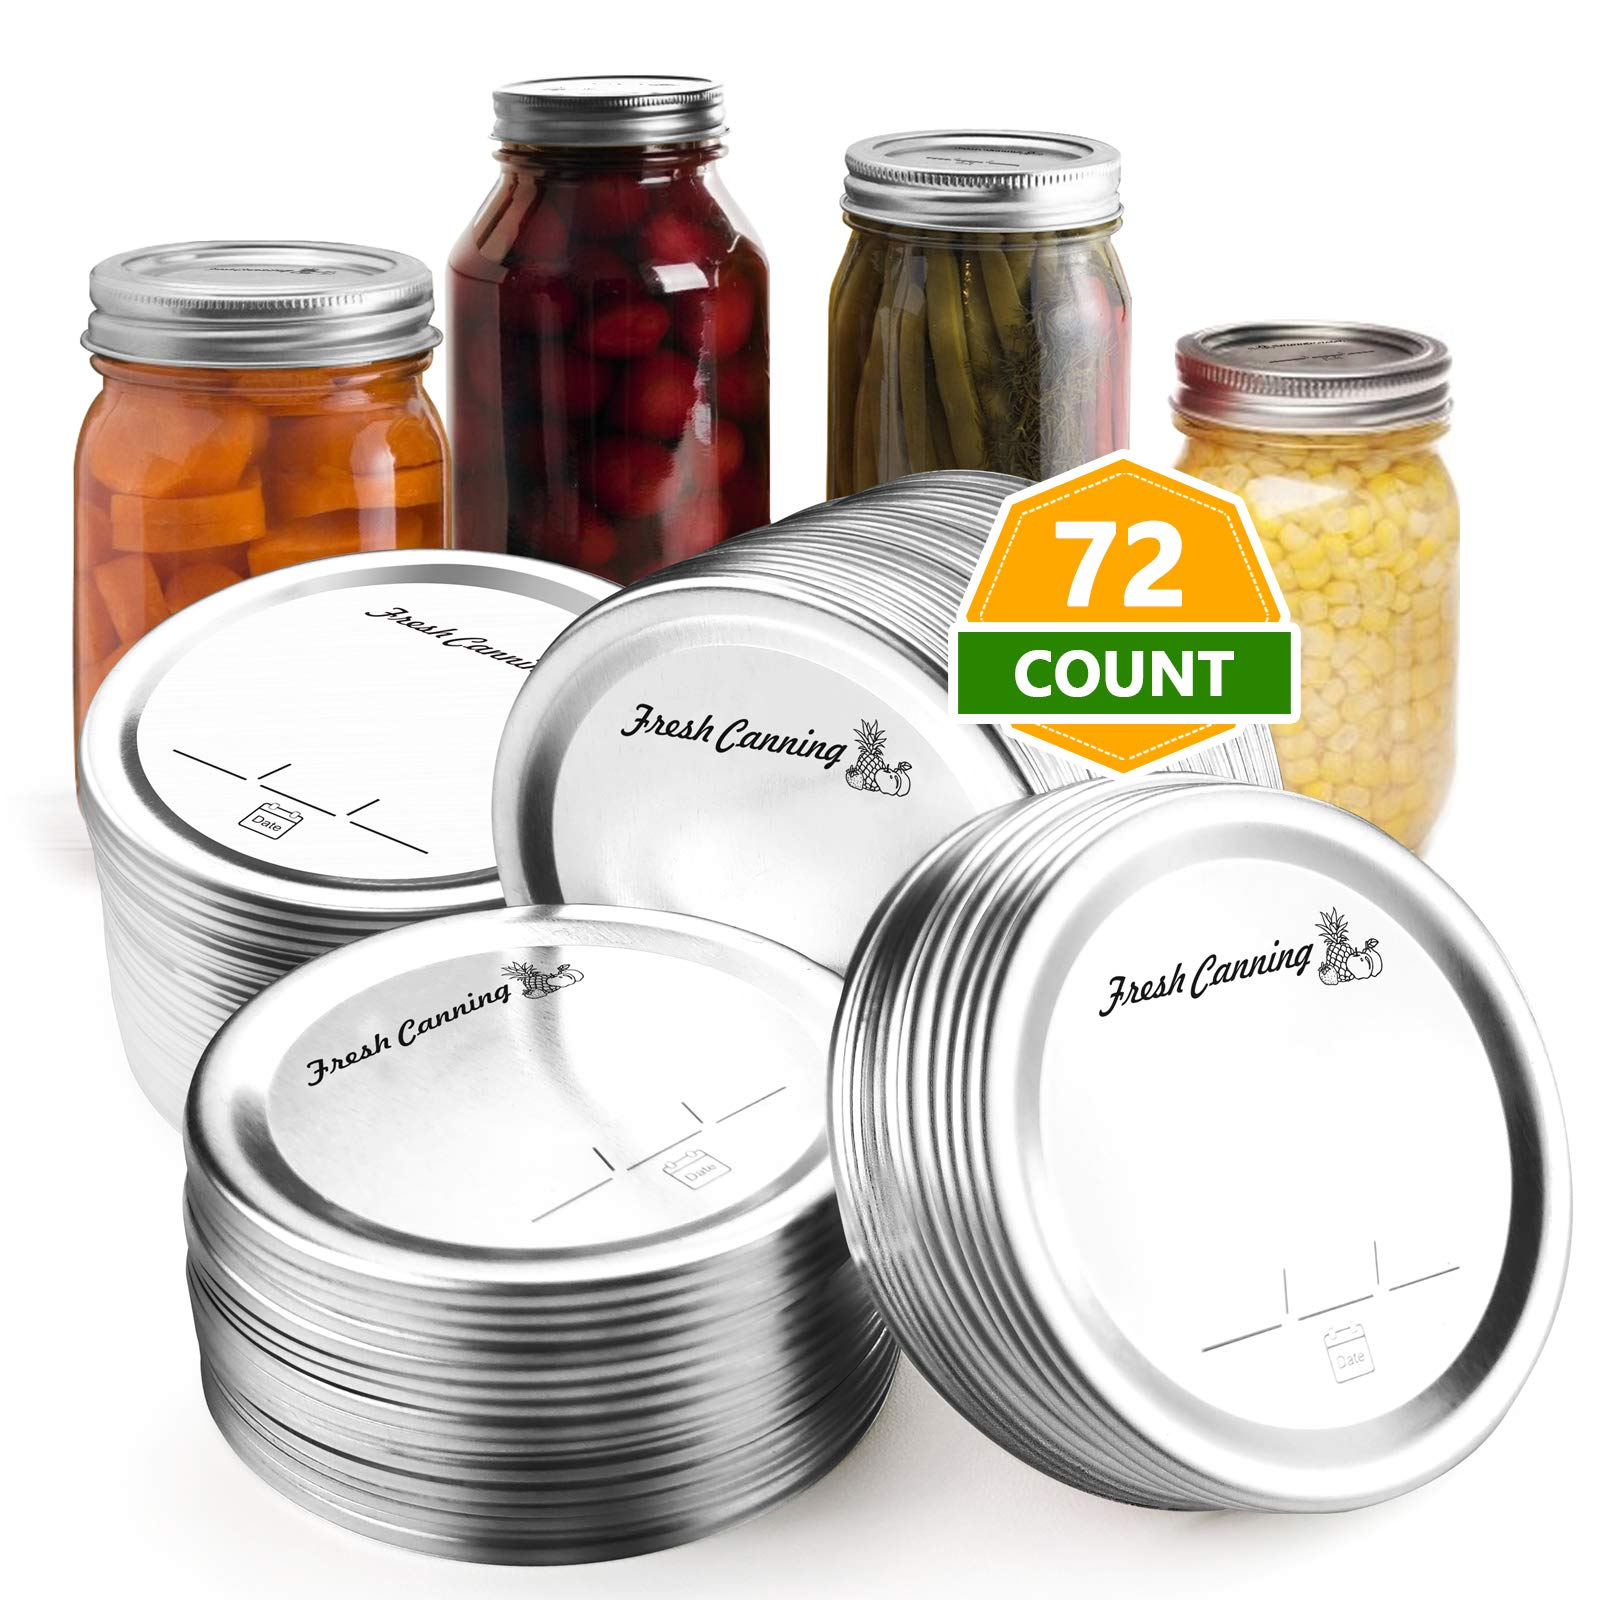 72 Count Canning Lids Regular Mouth – Mason Canning Jar Lids for